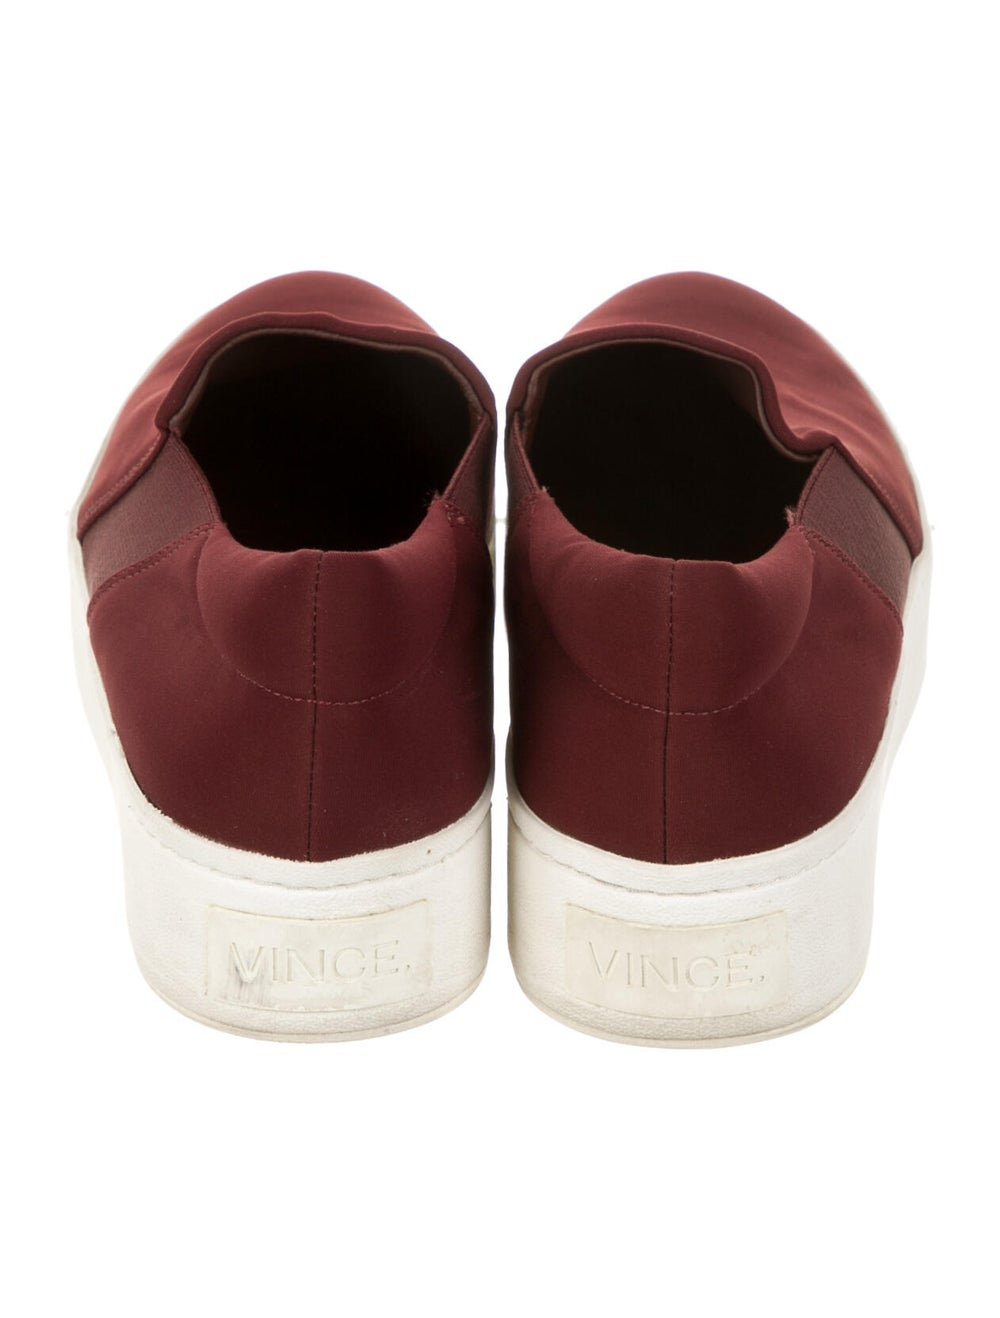 Vince Sneakers - image 4